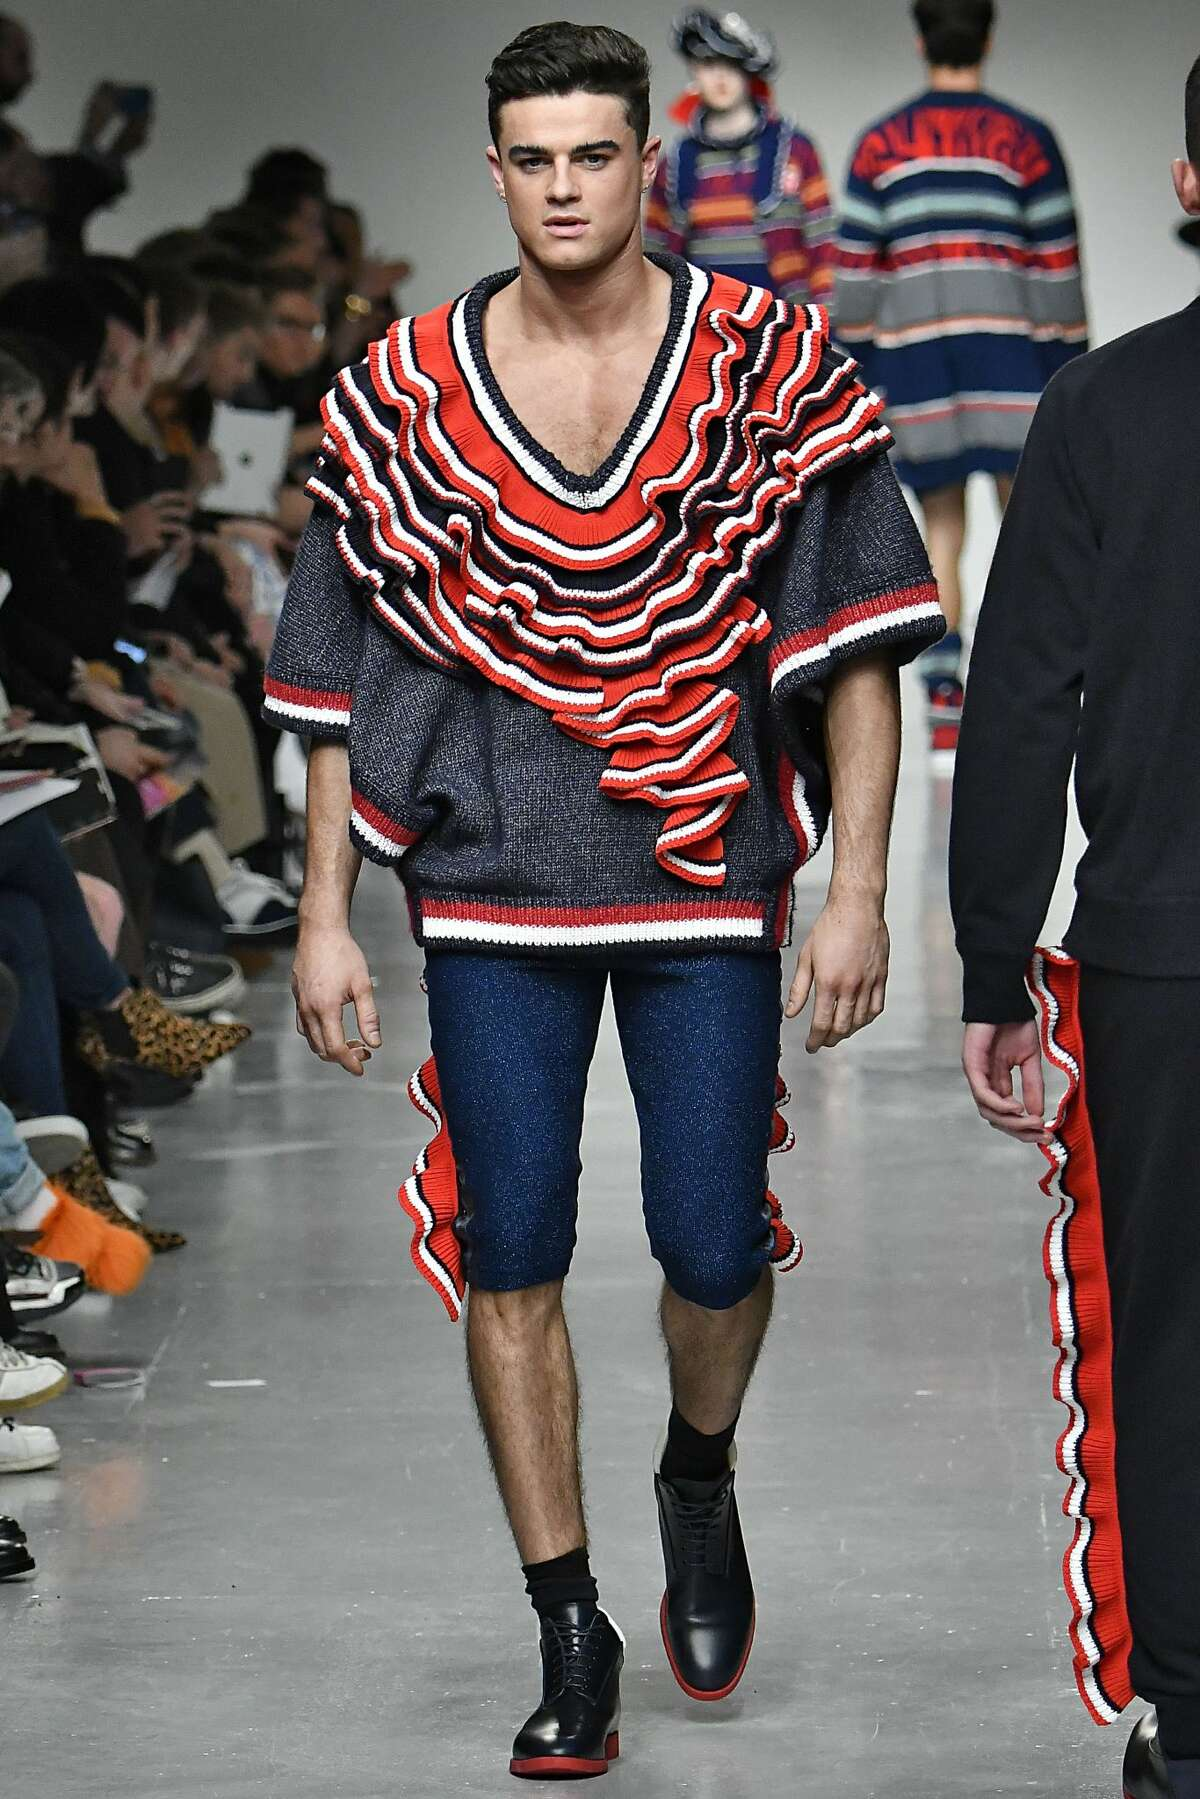 Sibling Autumn Winter 2017-2018: Just won't wear this to a circus or carnivals. The carnies might think you are part of the act.